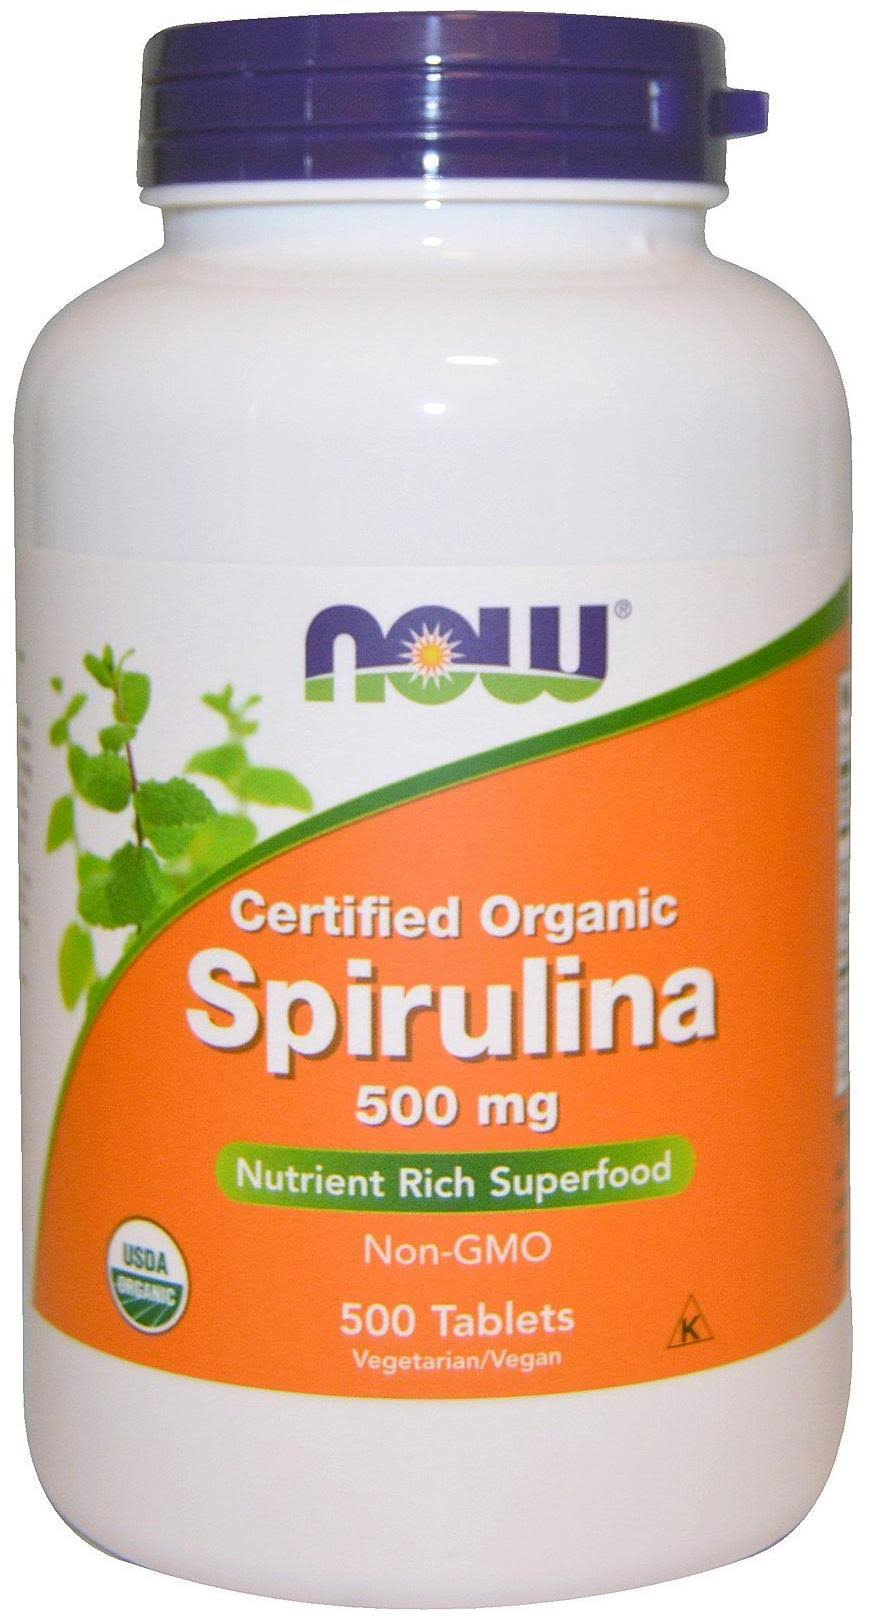 Now Spirulina - 500mg, 500 Tablets